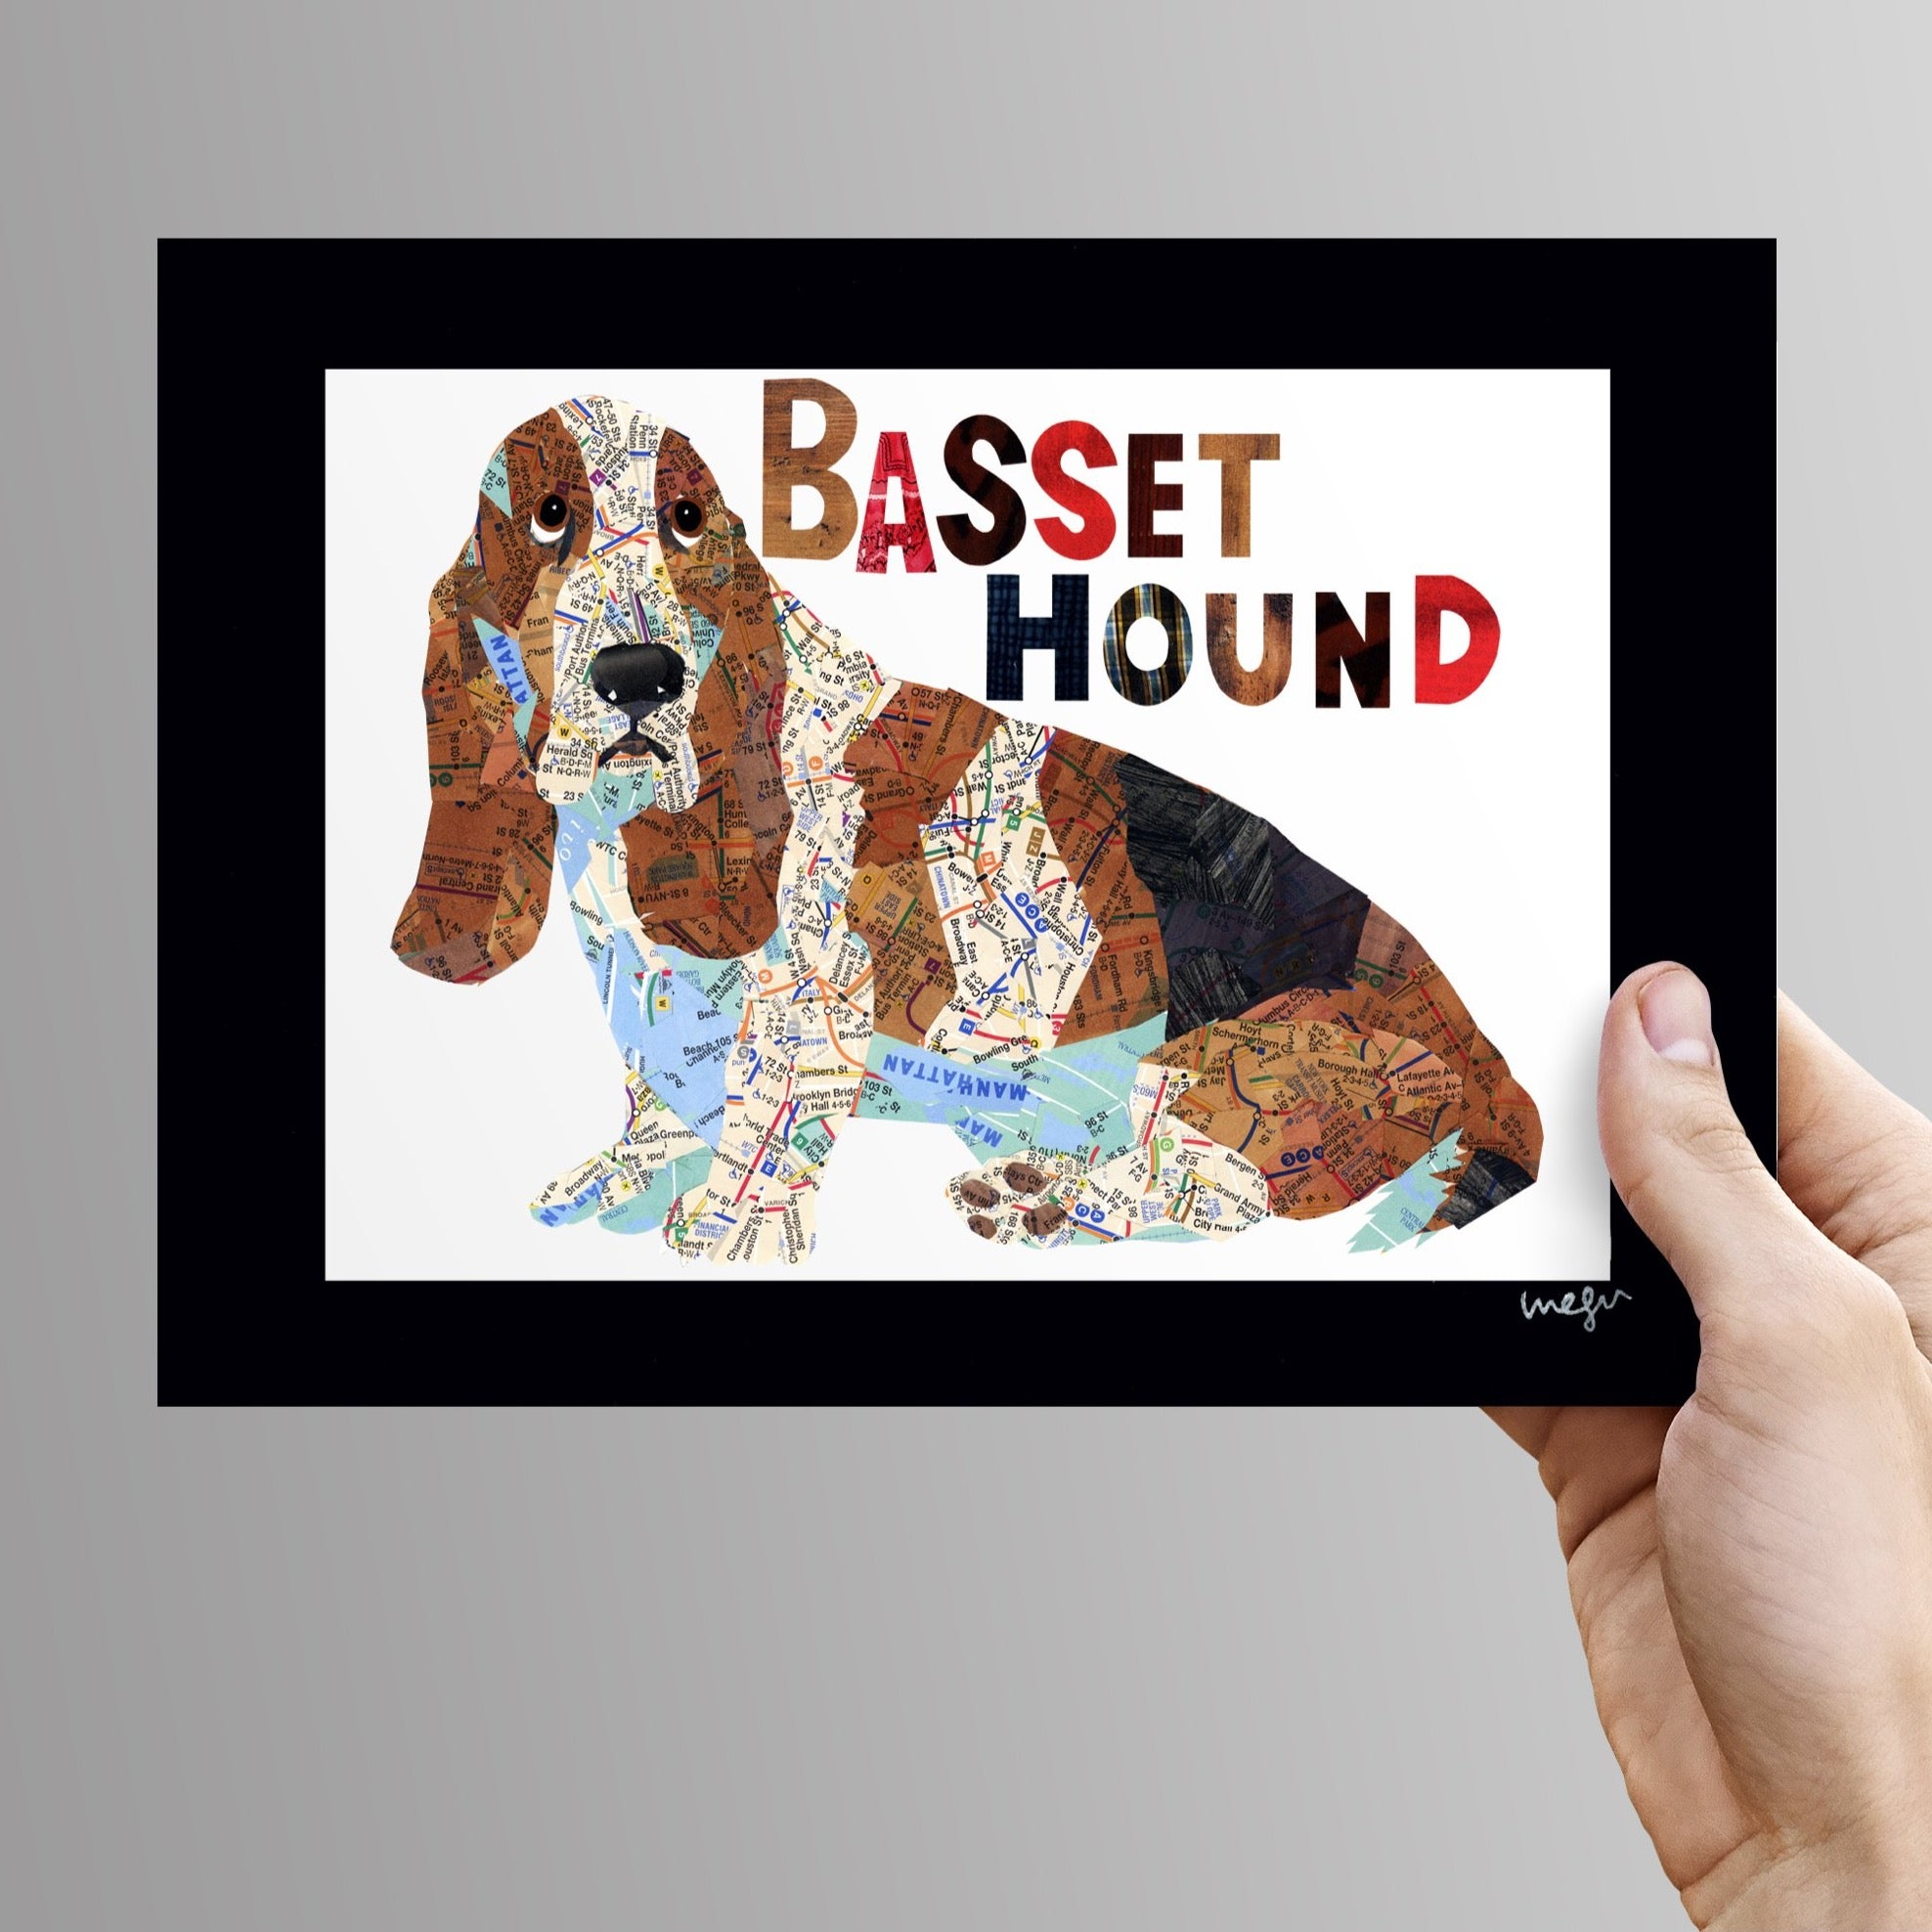 Basset hound dog Art Print